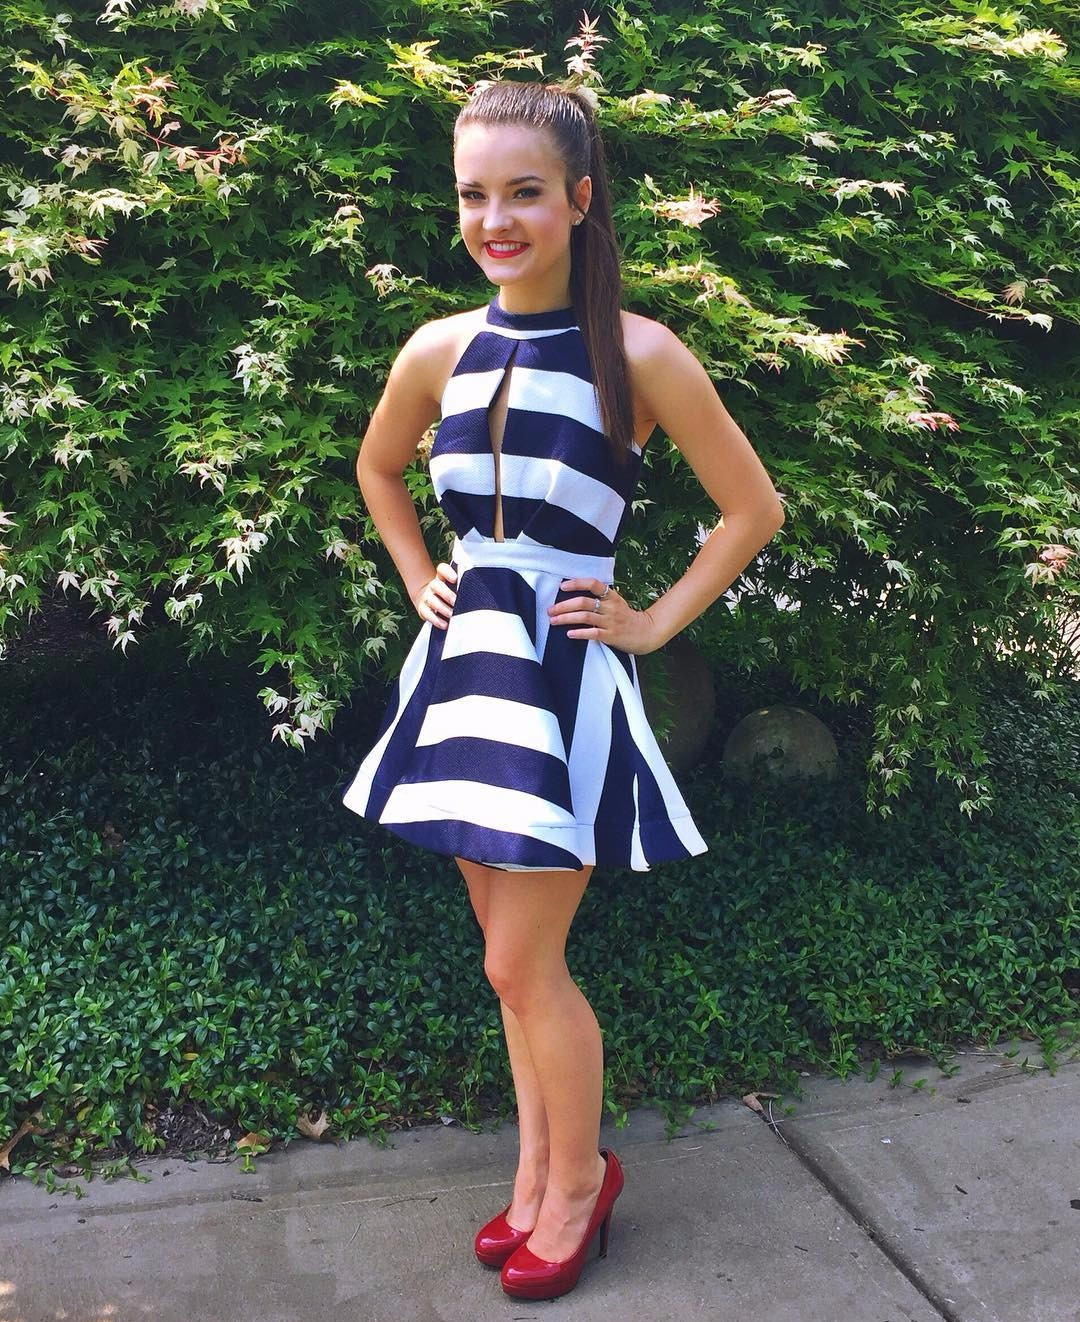 Brooke Hyland flaunting off her hot legs in short dress